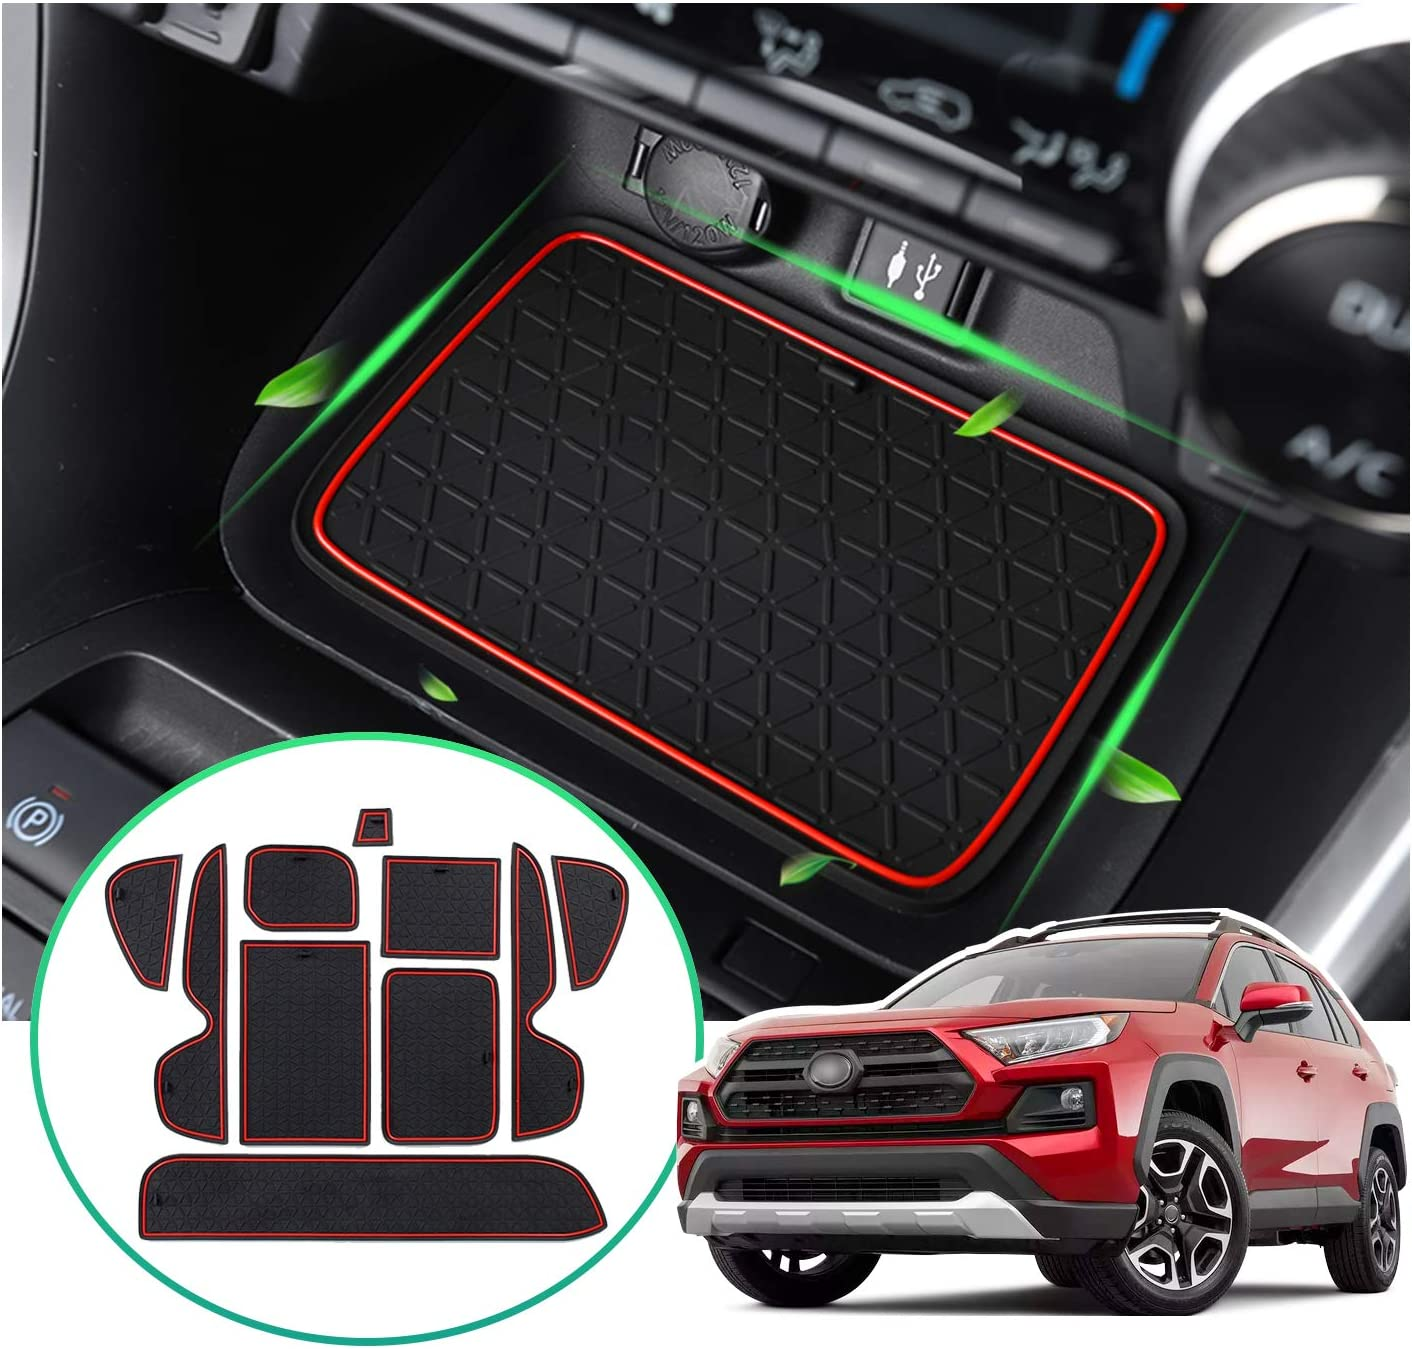 Red SHAOHAO Accessories for RAV4 Center Console Liners Compatible for Toyota RAV4 2019-2020 Premium Groove Liners Console Rubber Mats